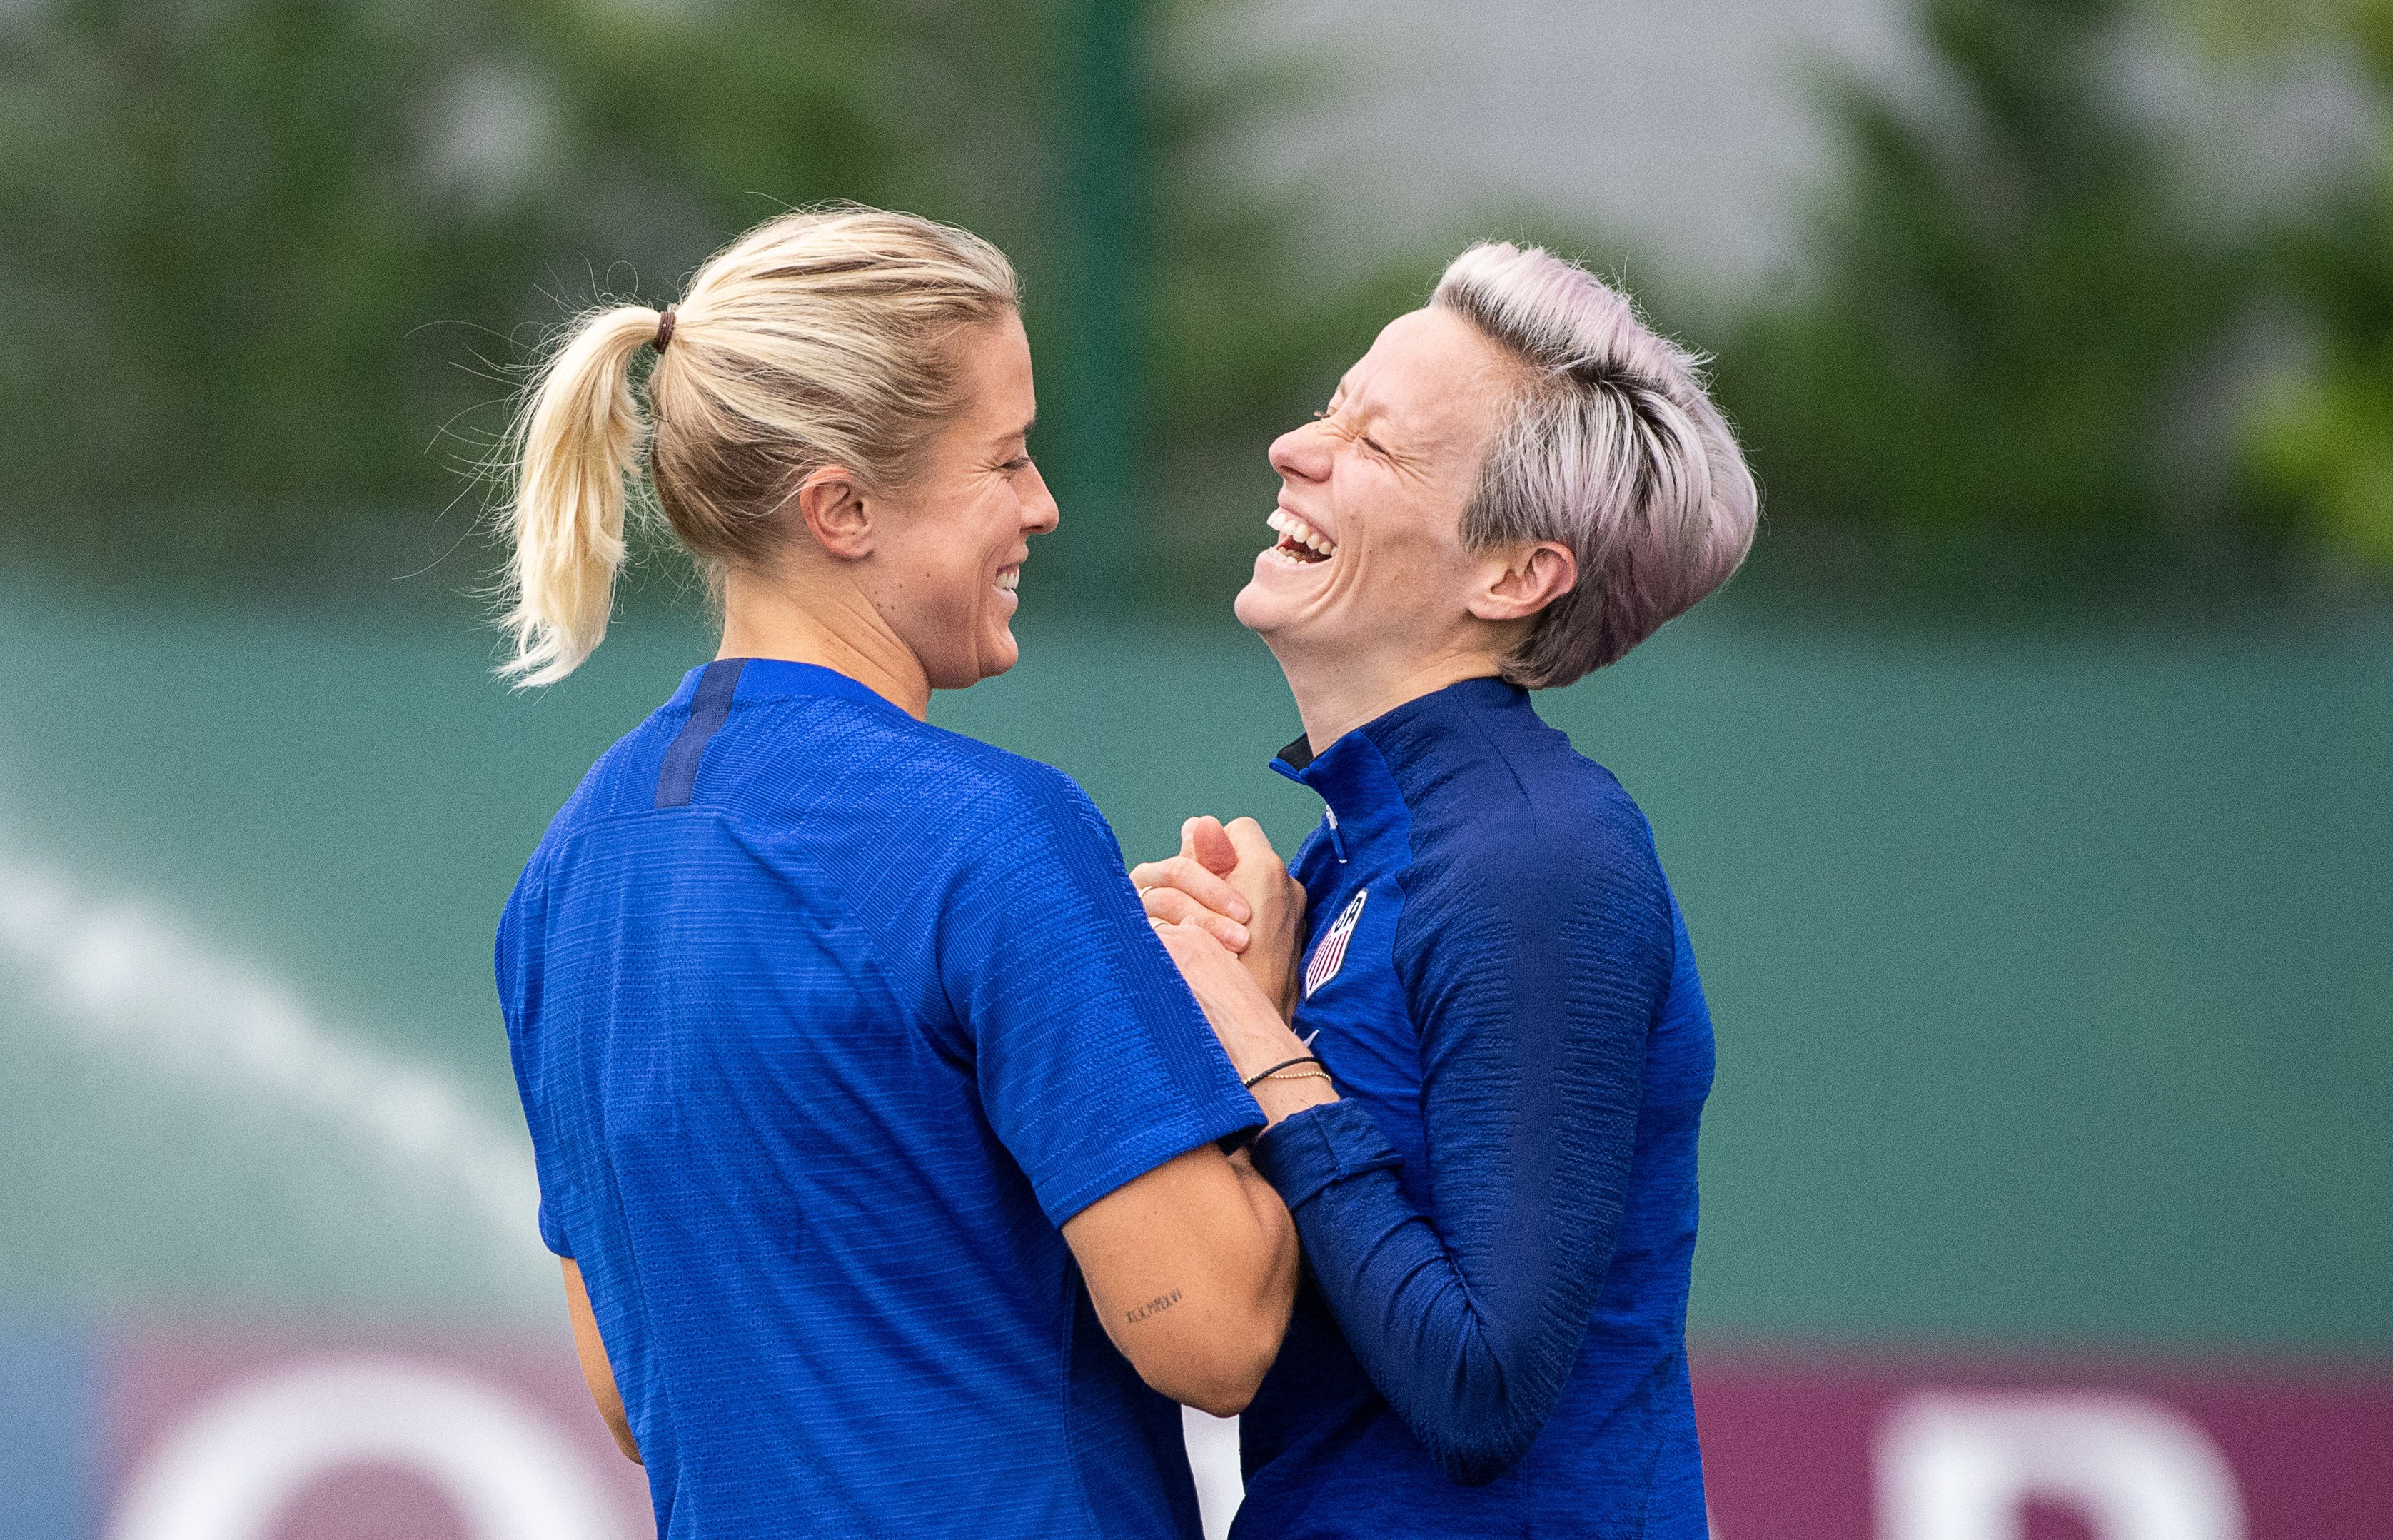 USA Soccer name 20-player squad for 2020 Concacaf Women's Olympic qualifying tournament featuring FIFA World Cup winning stars including Megan Rapinoe and Julie Ertz, while pregnant Alex Morgan is missing